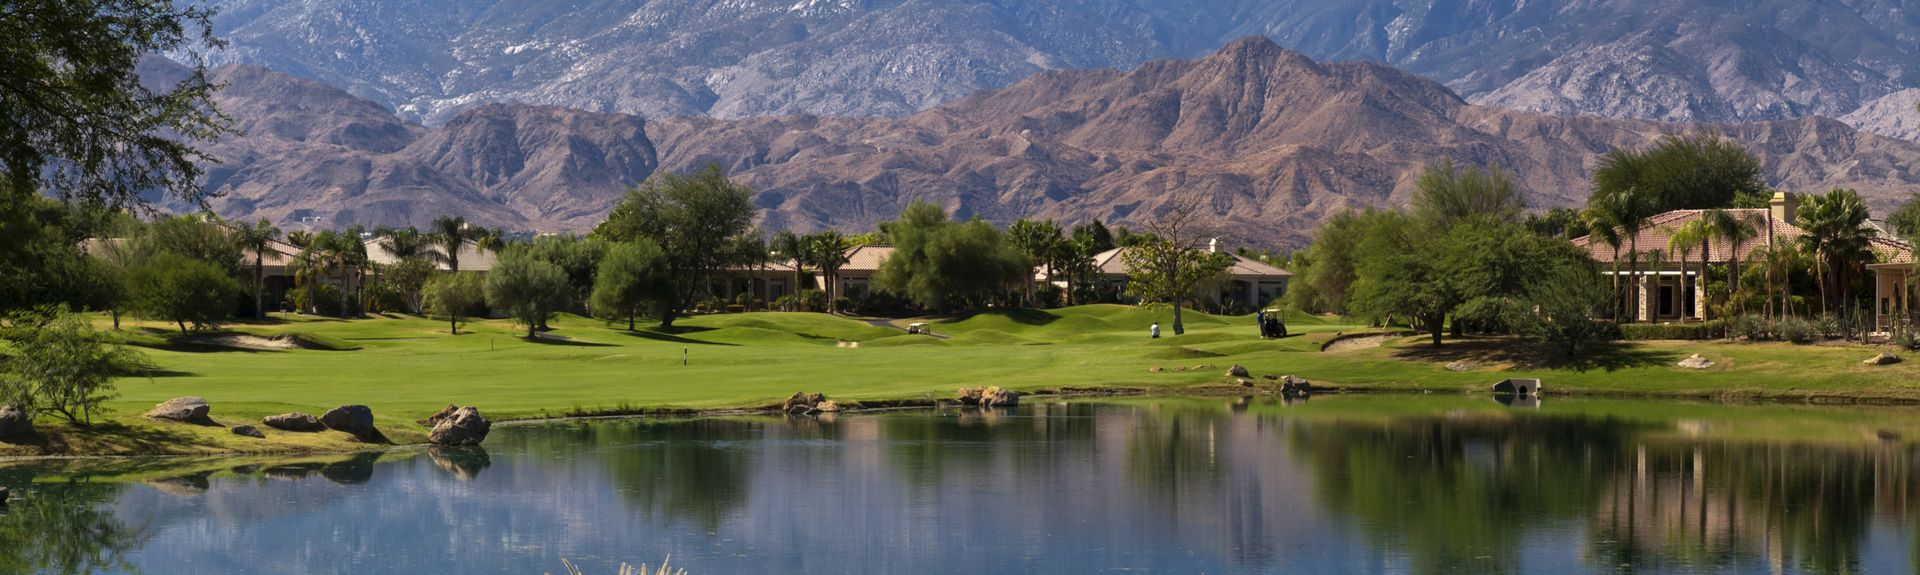 Rancho Mirage, Califórnia, Estados Unidos